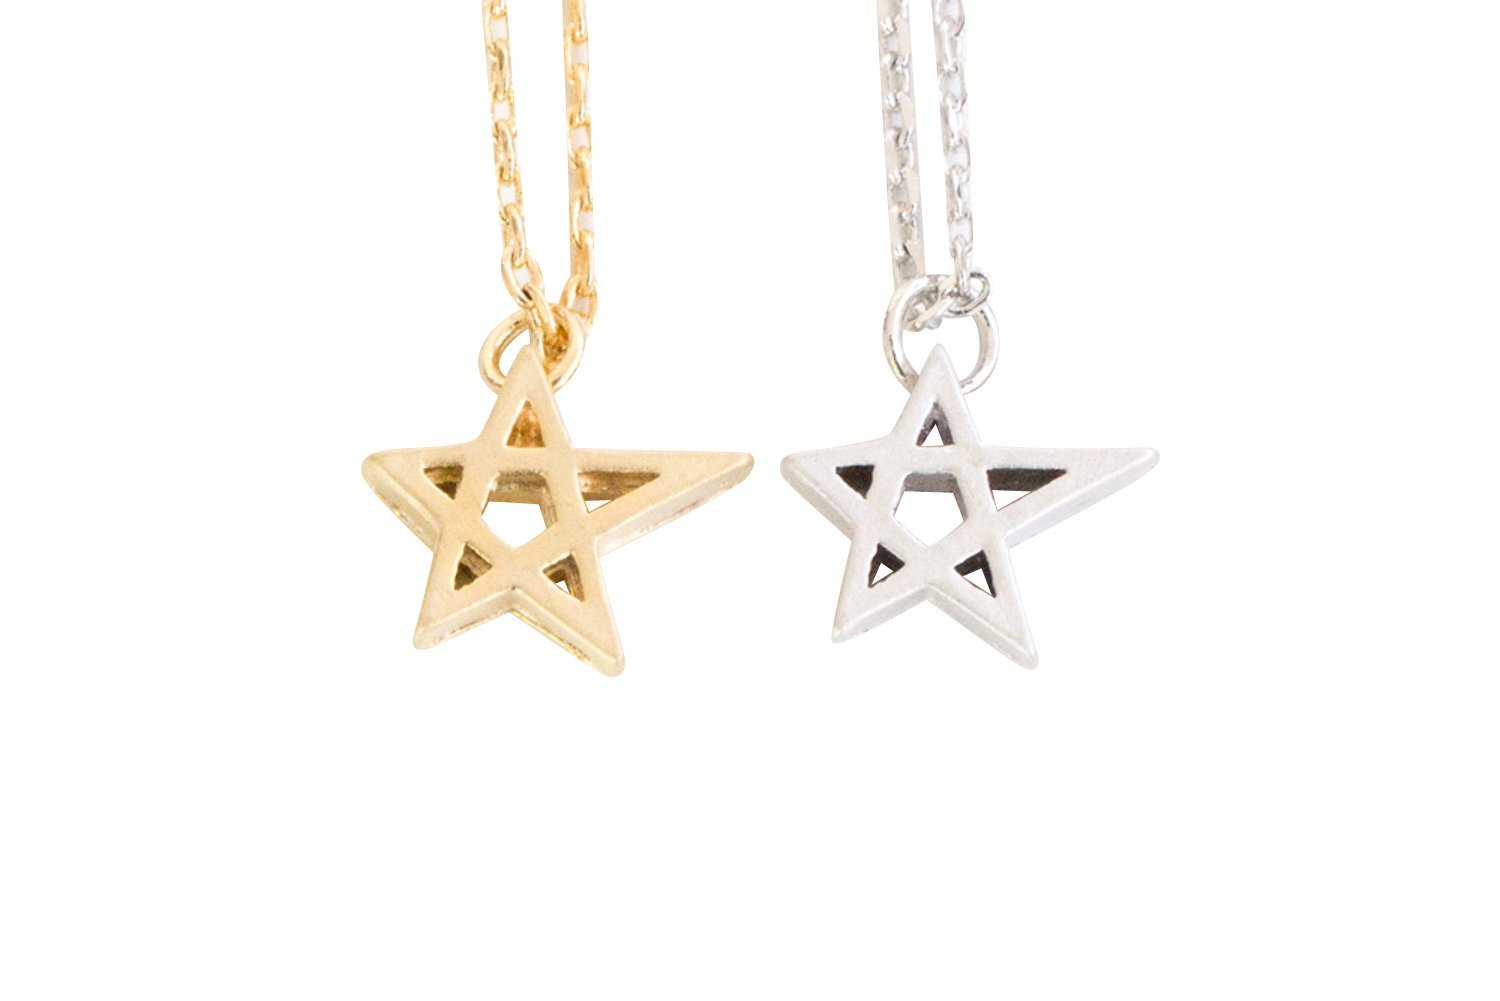 wholesale long chain pendant star necklace women product ball sound angel for music jewelry shape bola